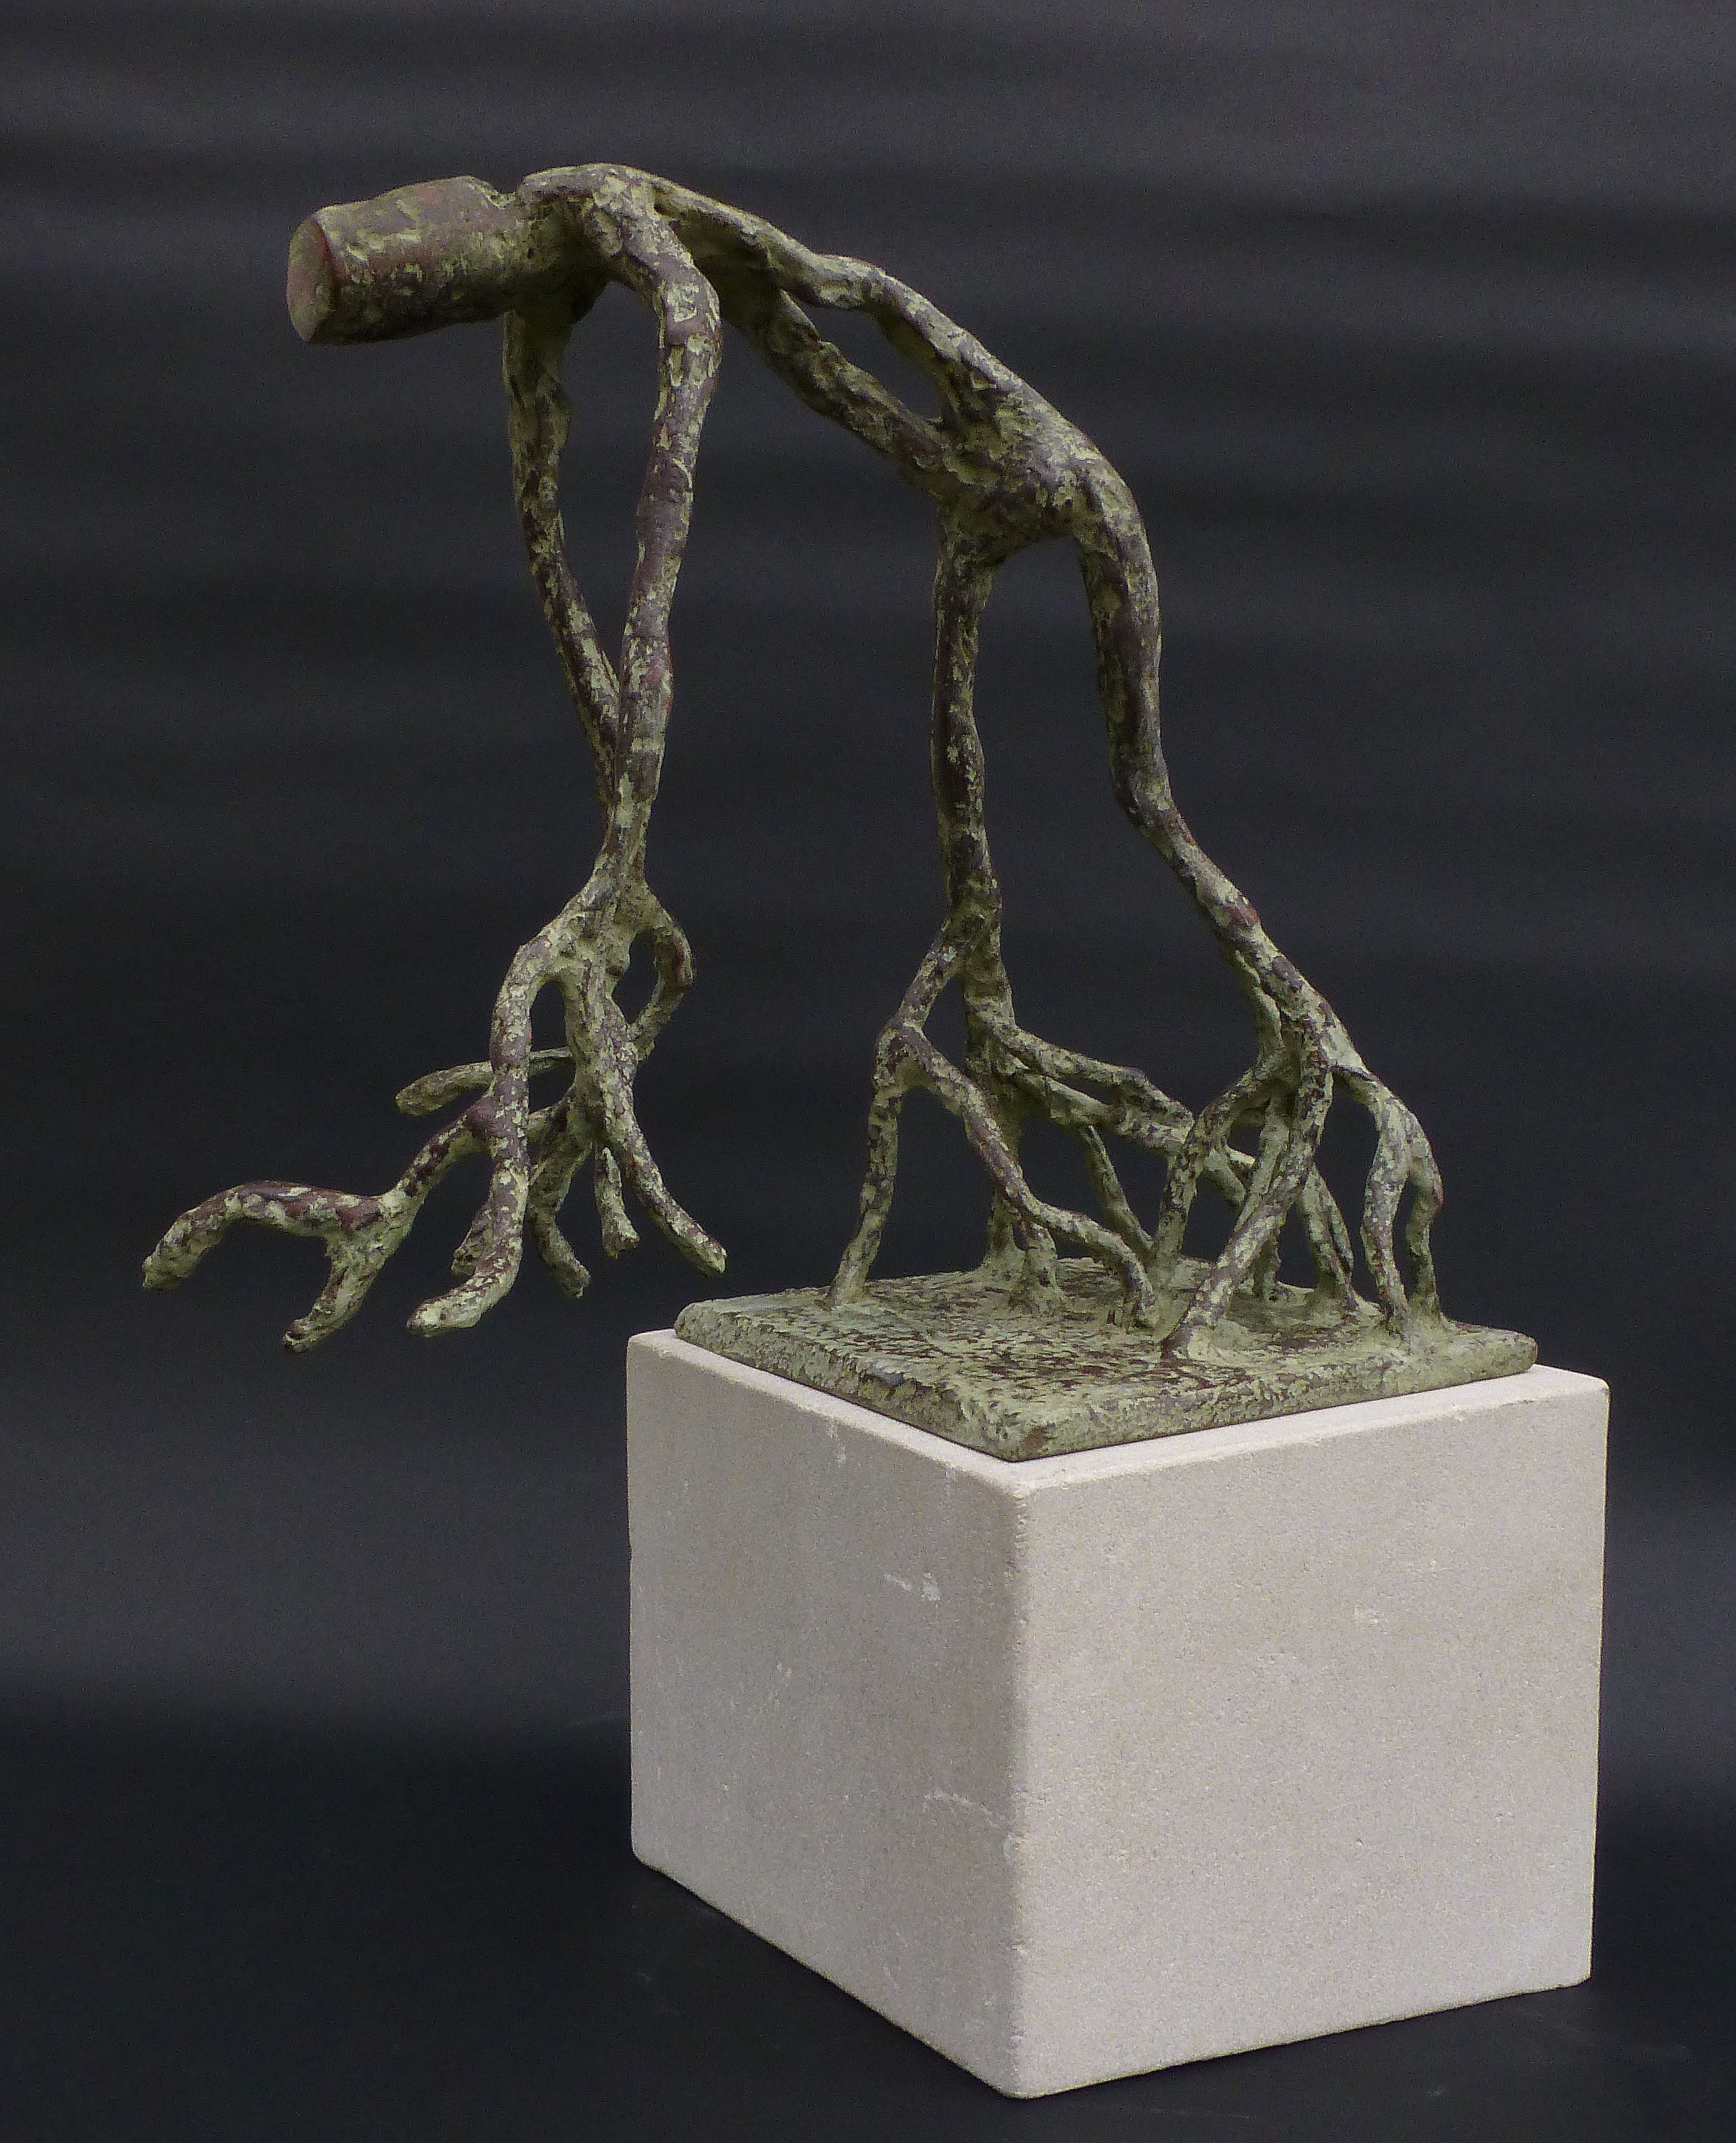 Figurative sculpture, sculpture, welded sculpture, resin